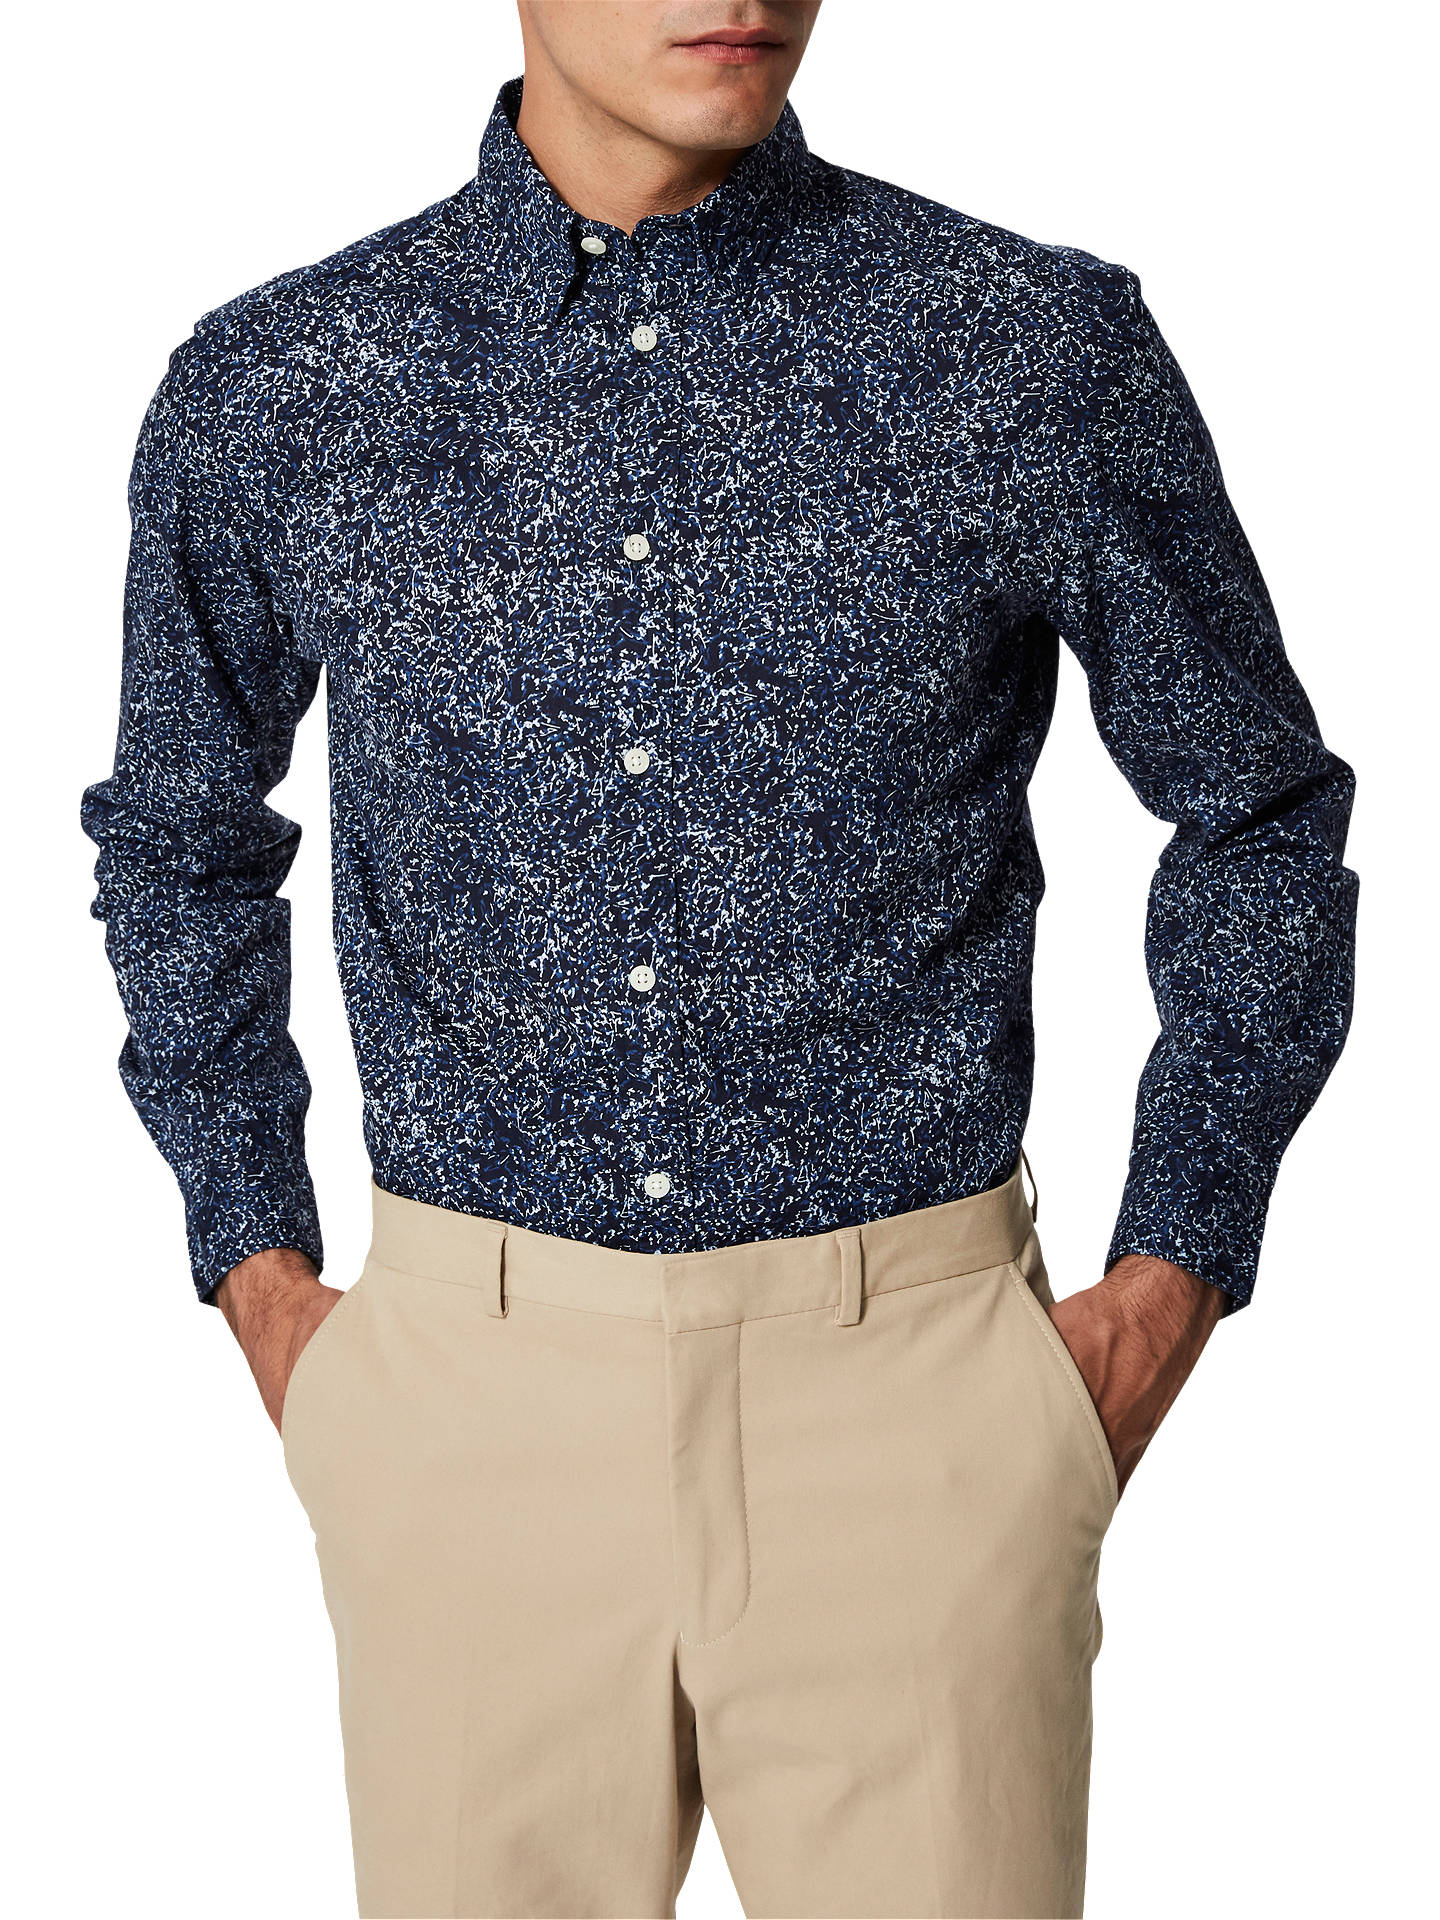 BuySelected Homme Mase Long Sleeve Shirt, Blue, XL Online at johnlewis.com